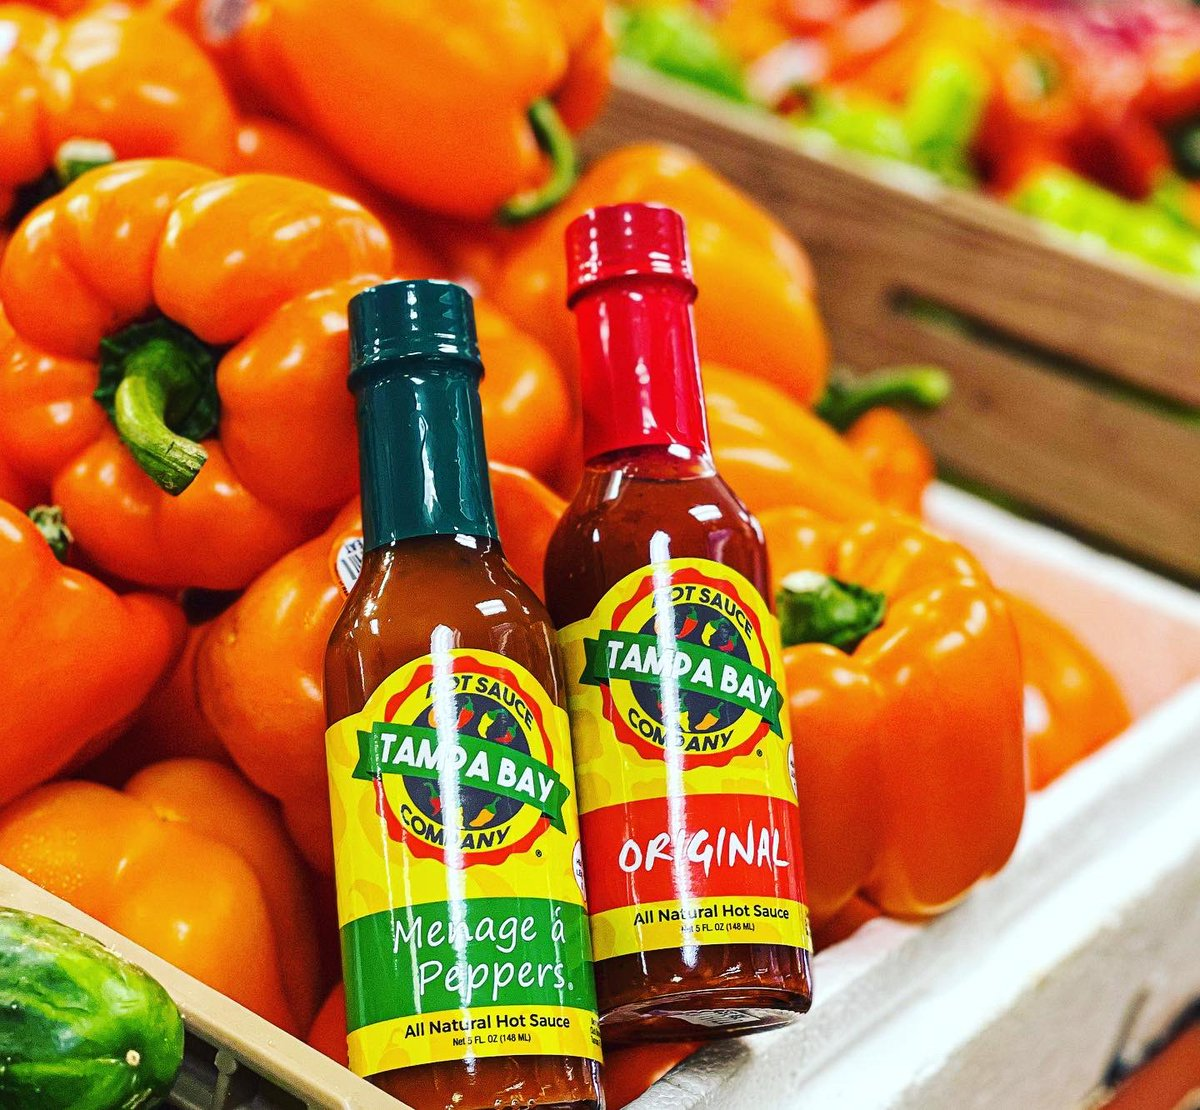 Joe's Produce and Deli Market restocked!!!  Be sure to pick up some #heat for the #weekend 🔥 Joe's has the best #produce #deli and #hotsauce in town!! If you haven't been you're missing out!